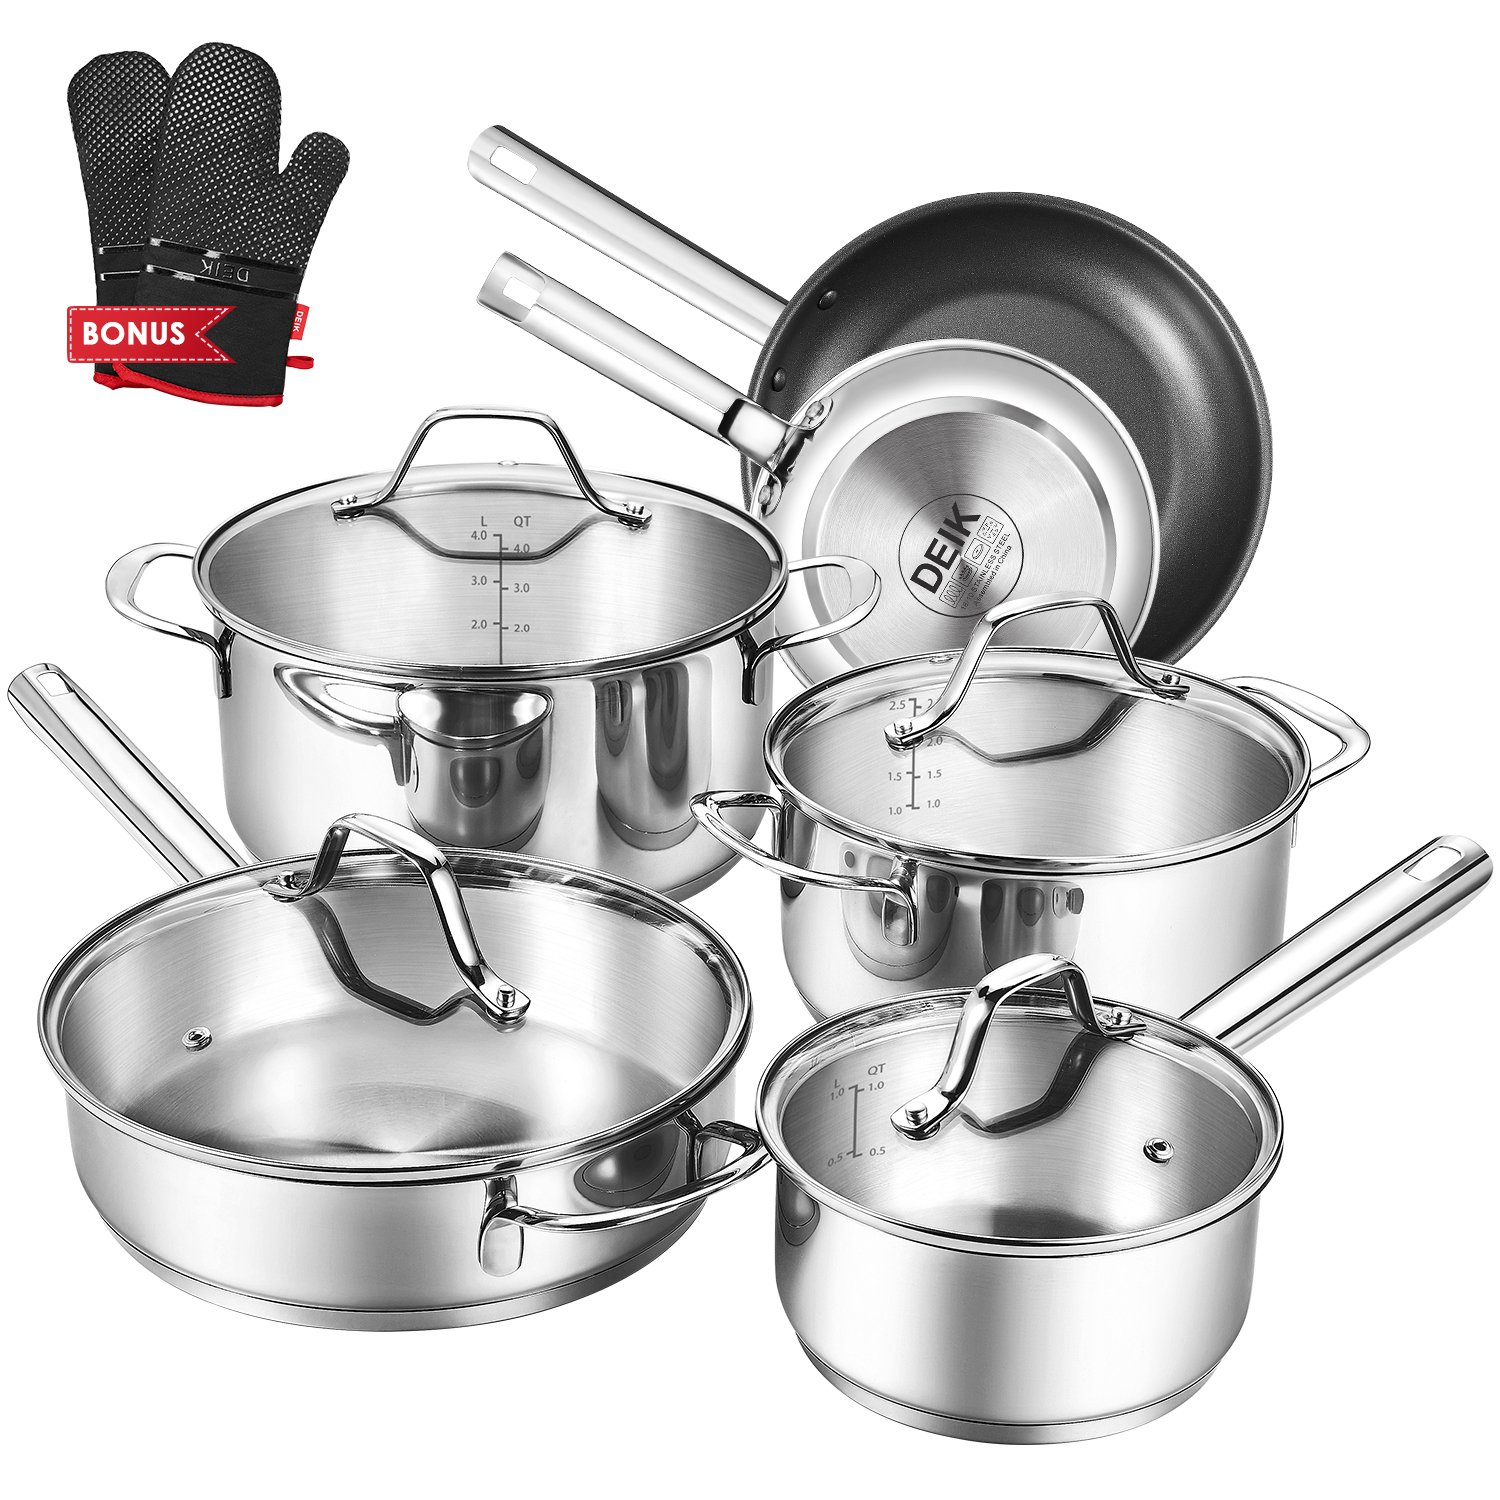 Deik Cookware Set, Kitchenware Set, MultiClad Pro Stainless Steel 12 ...